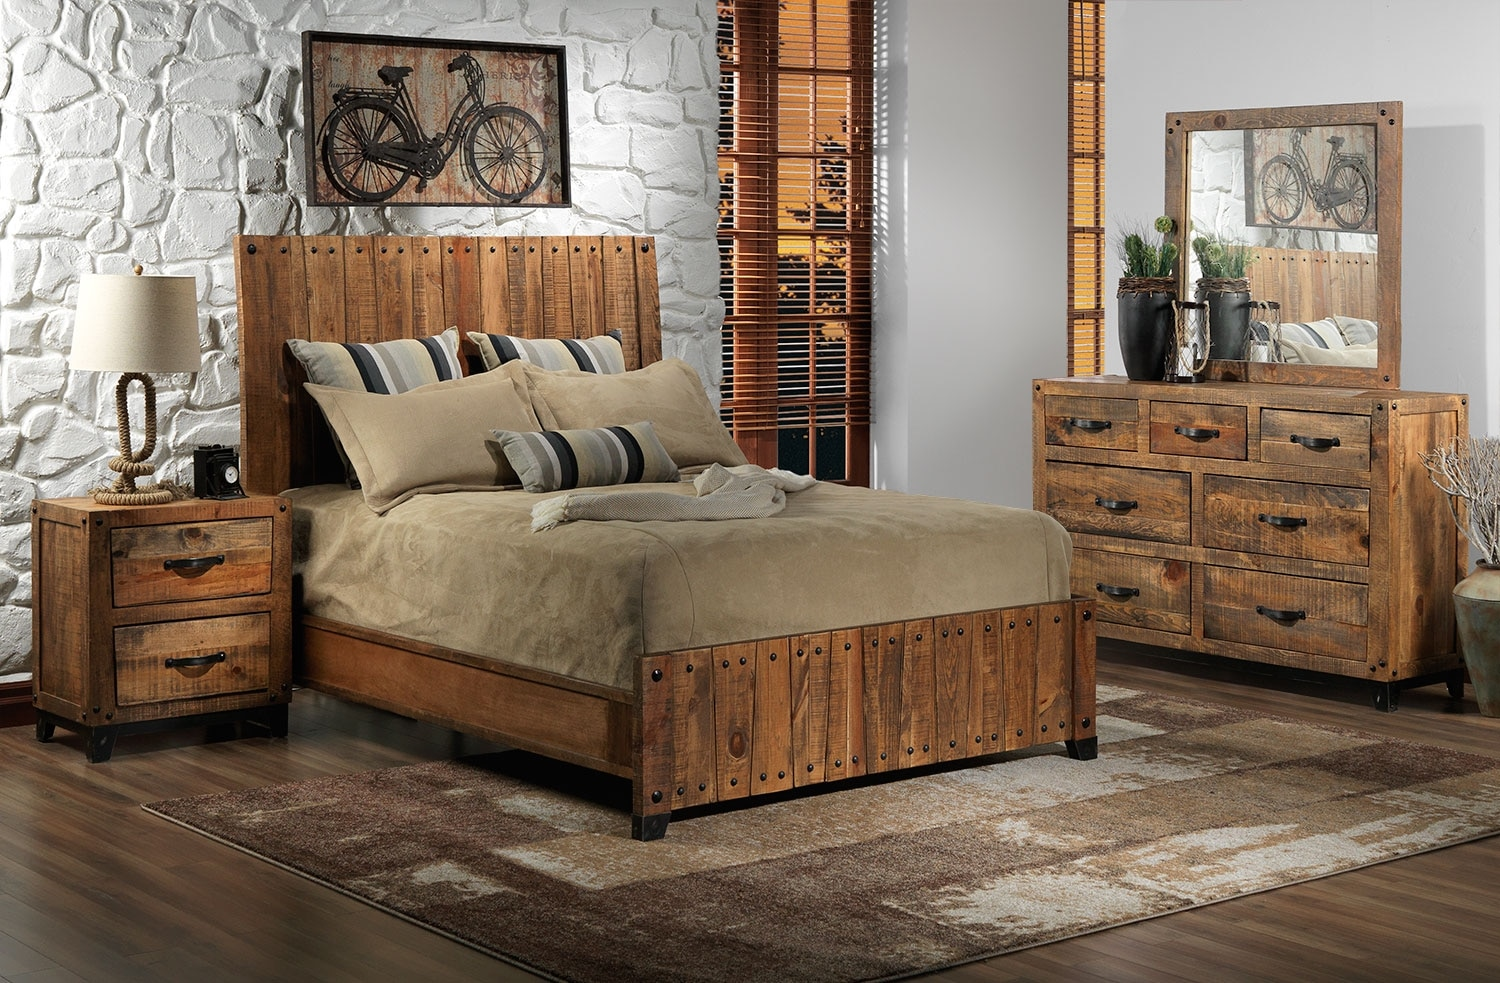 Maya 5-Piece King Bedroom Set - Rustic Pine